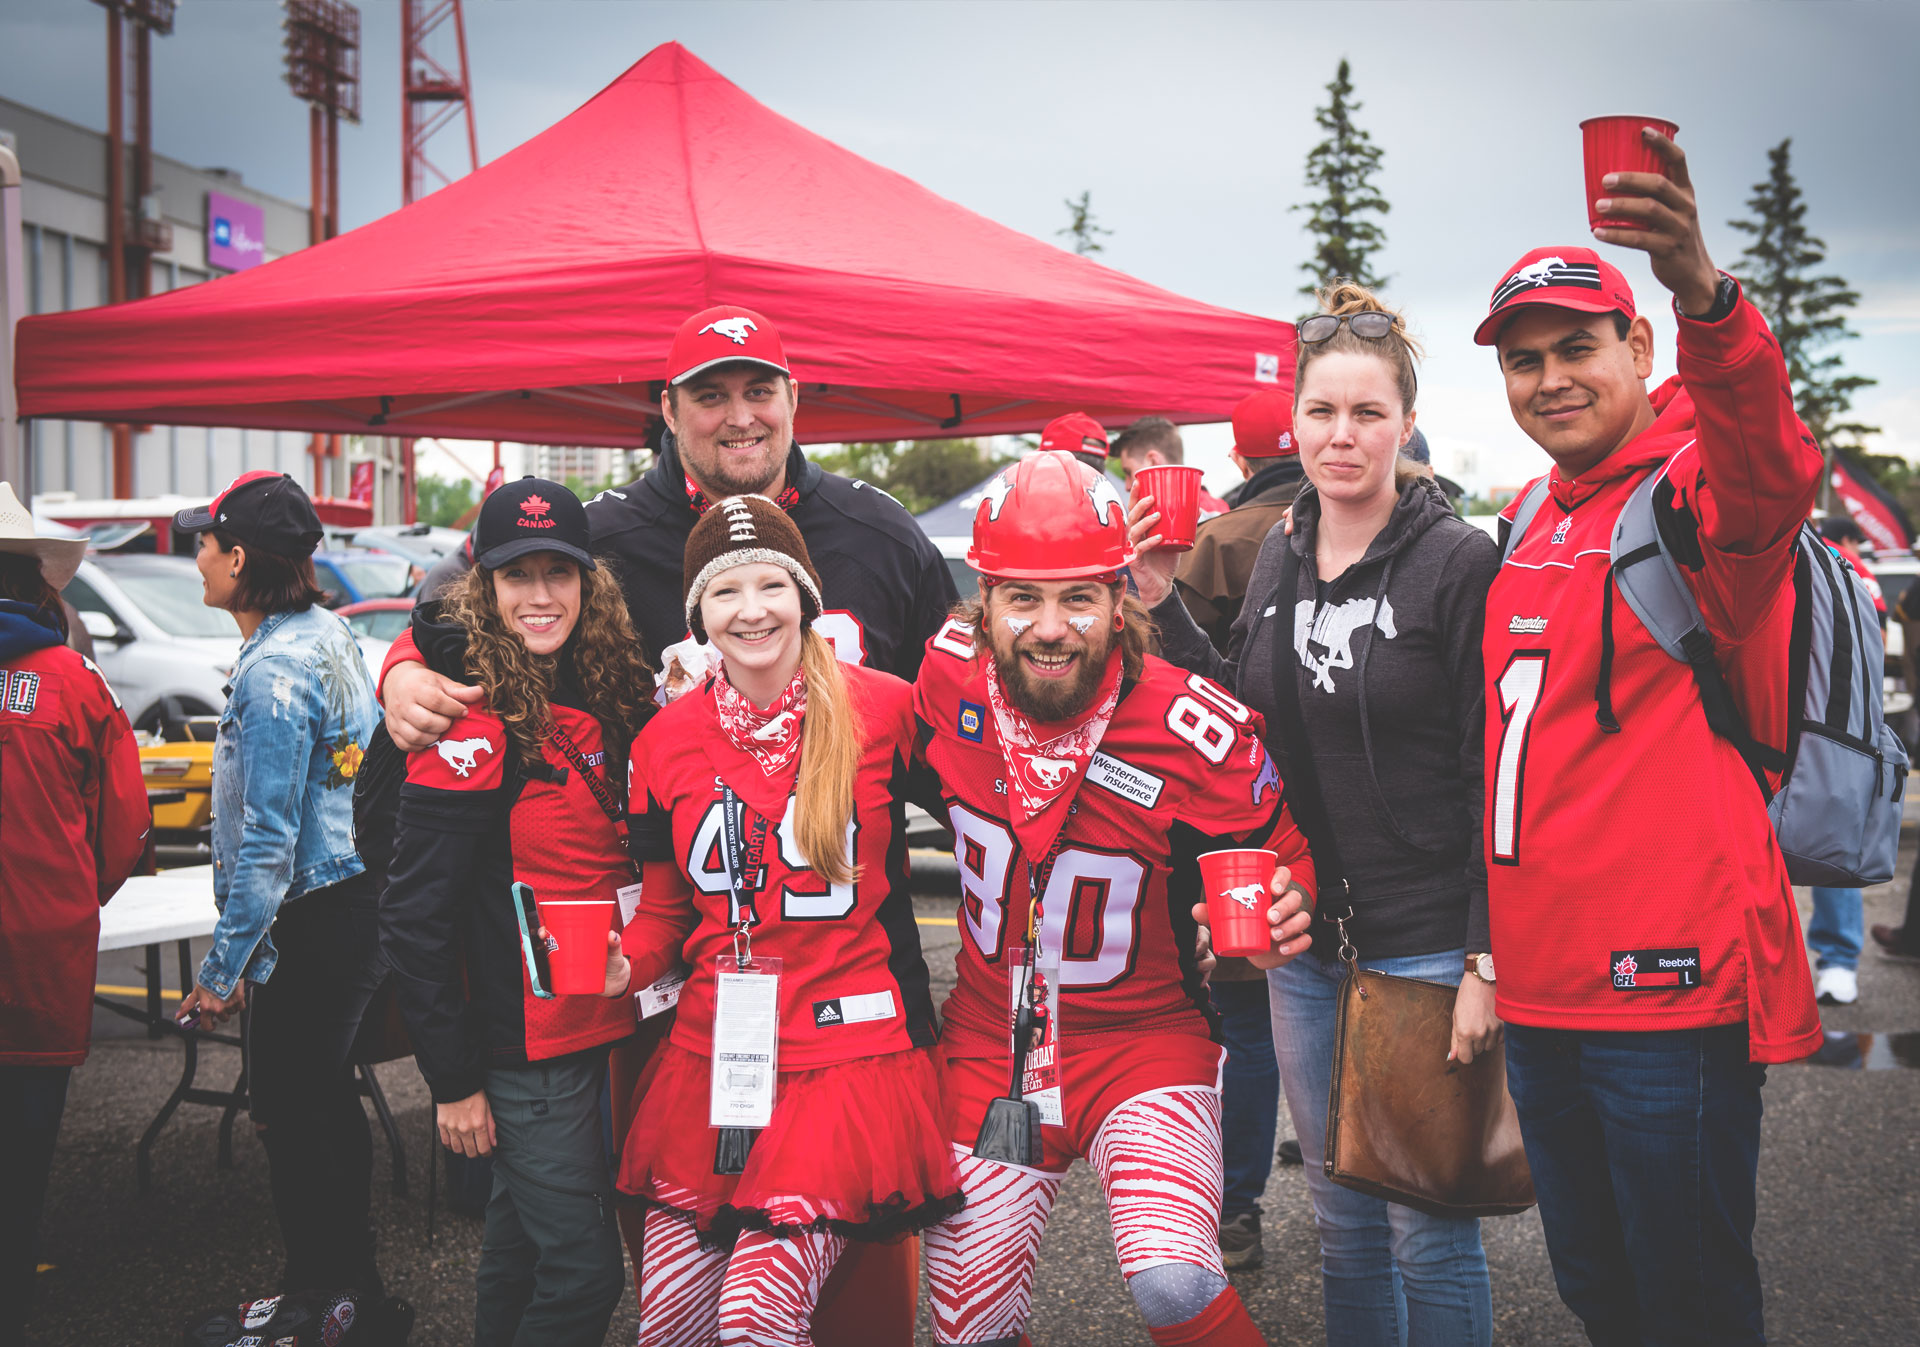 Celebrate your love of the game at the greatest tailgate experience in the CFL.